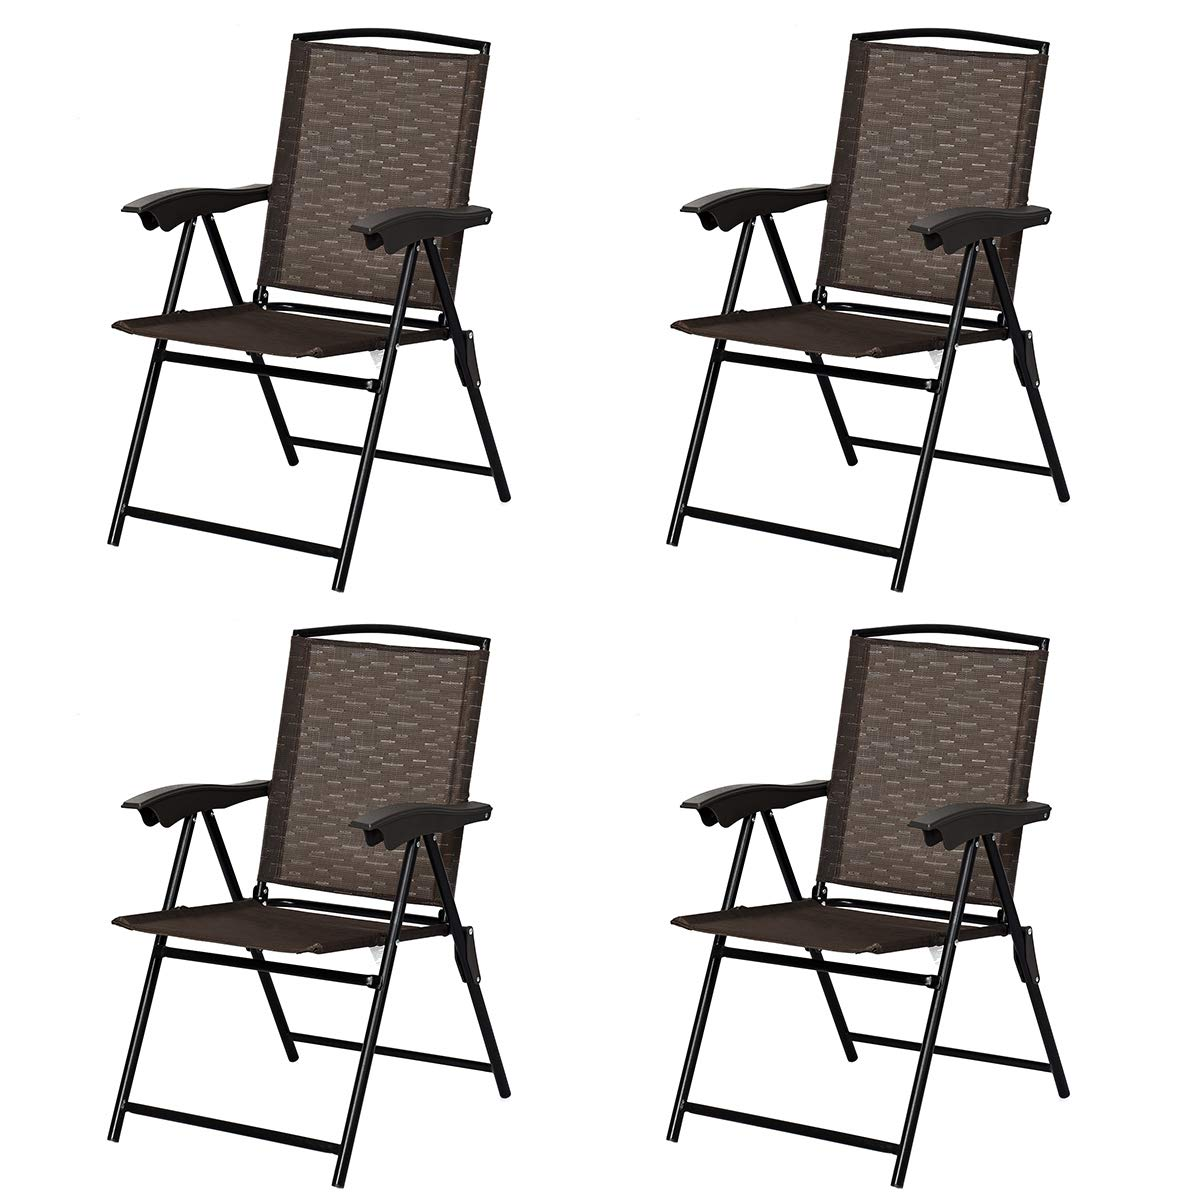 Goplus Sets of 4 Folding Sling Chairs Portable Chairs for Patio Garden Pool Outdoor & Indoor w/Armrests by Goplus